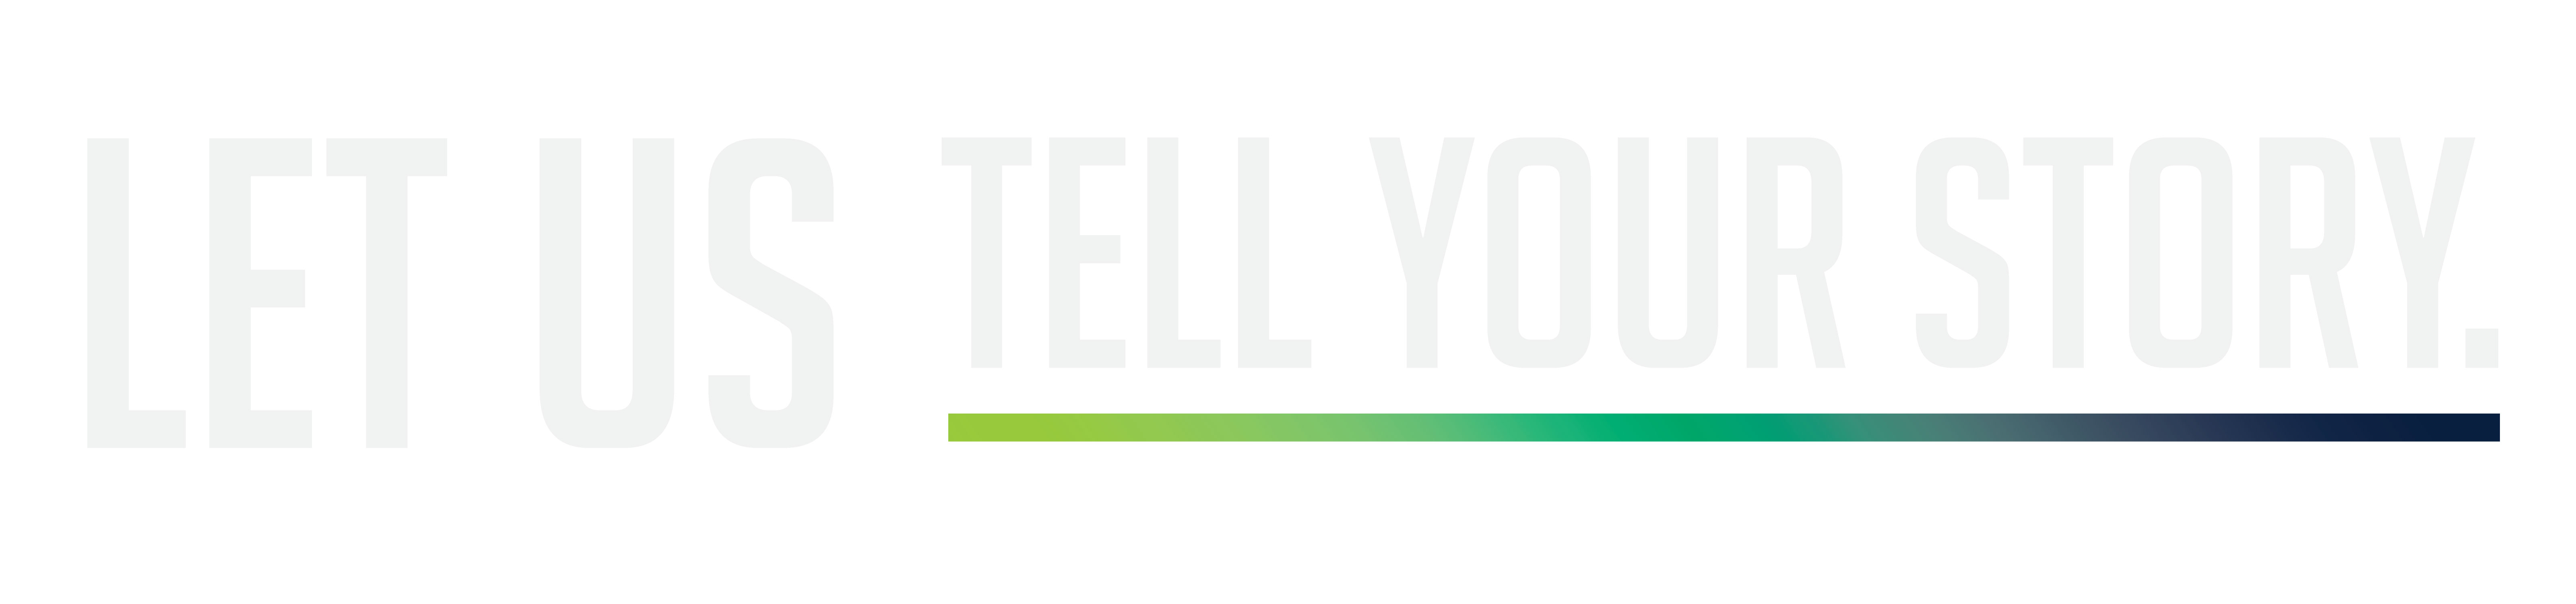 let-us-tell-your-story